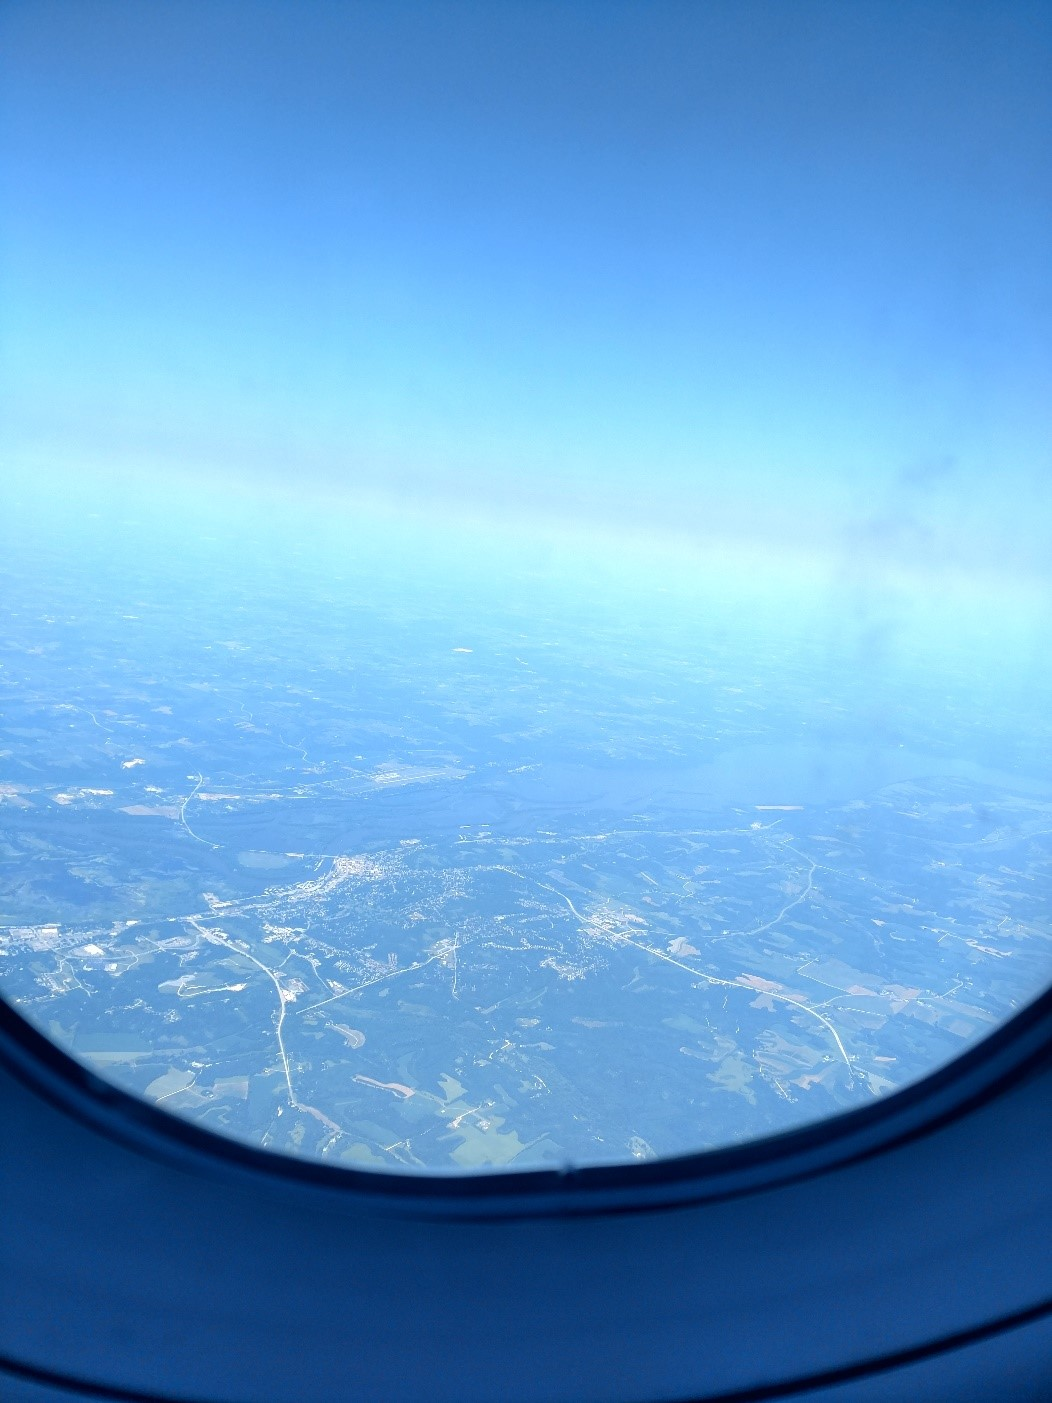 View out the window of the plane taking off from Minneapolis, 7-18.